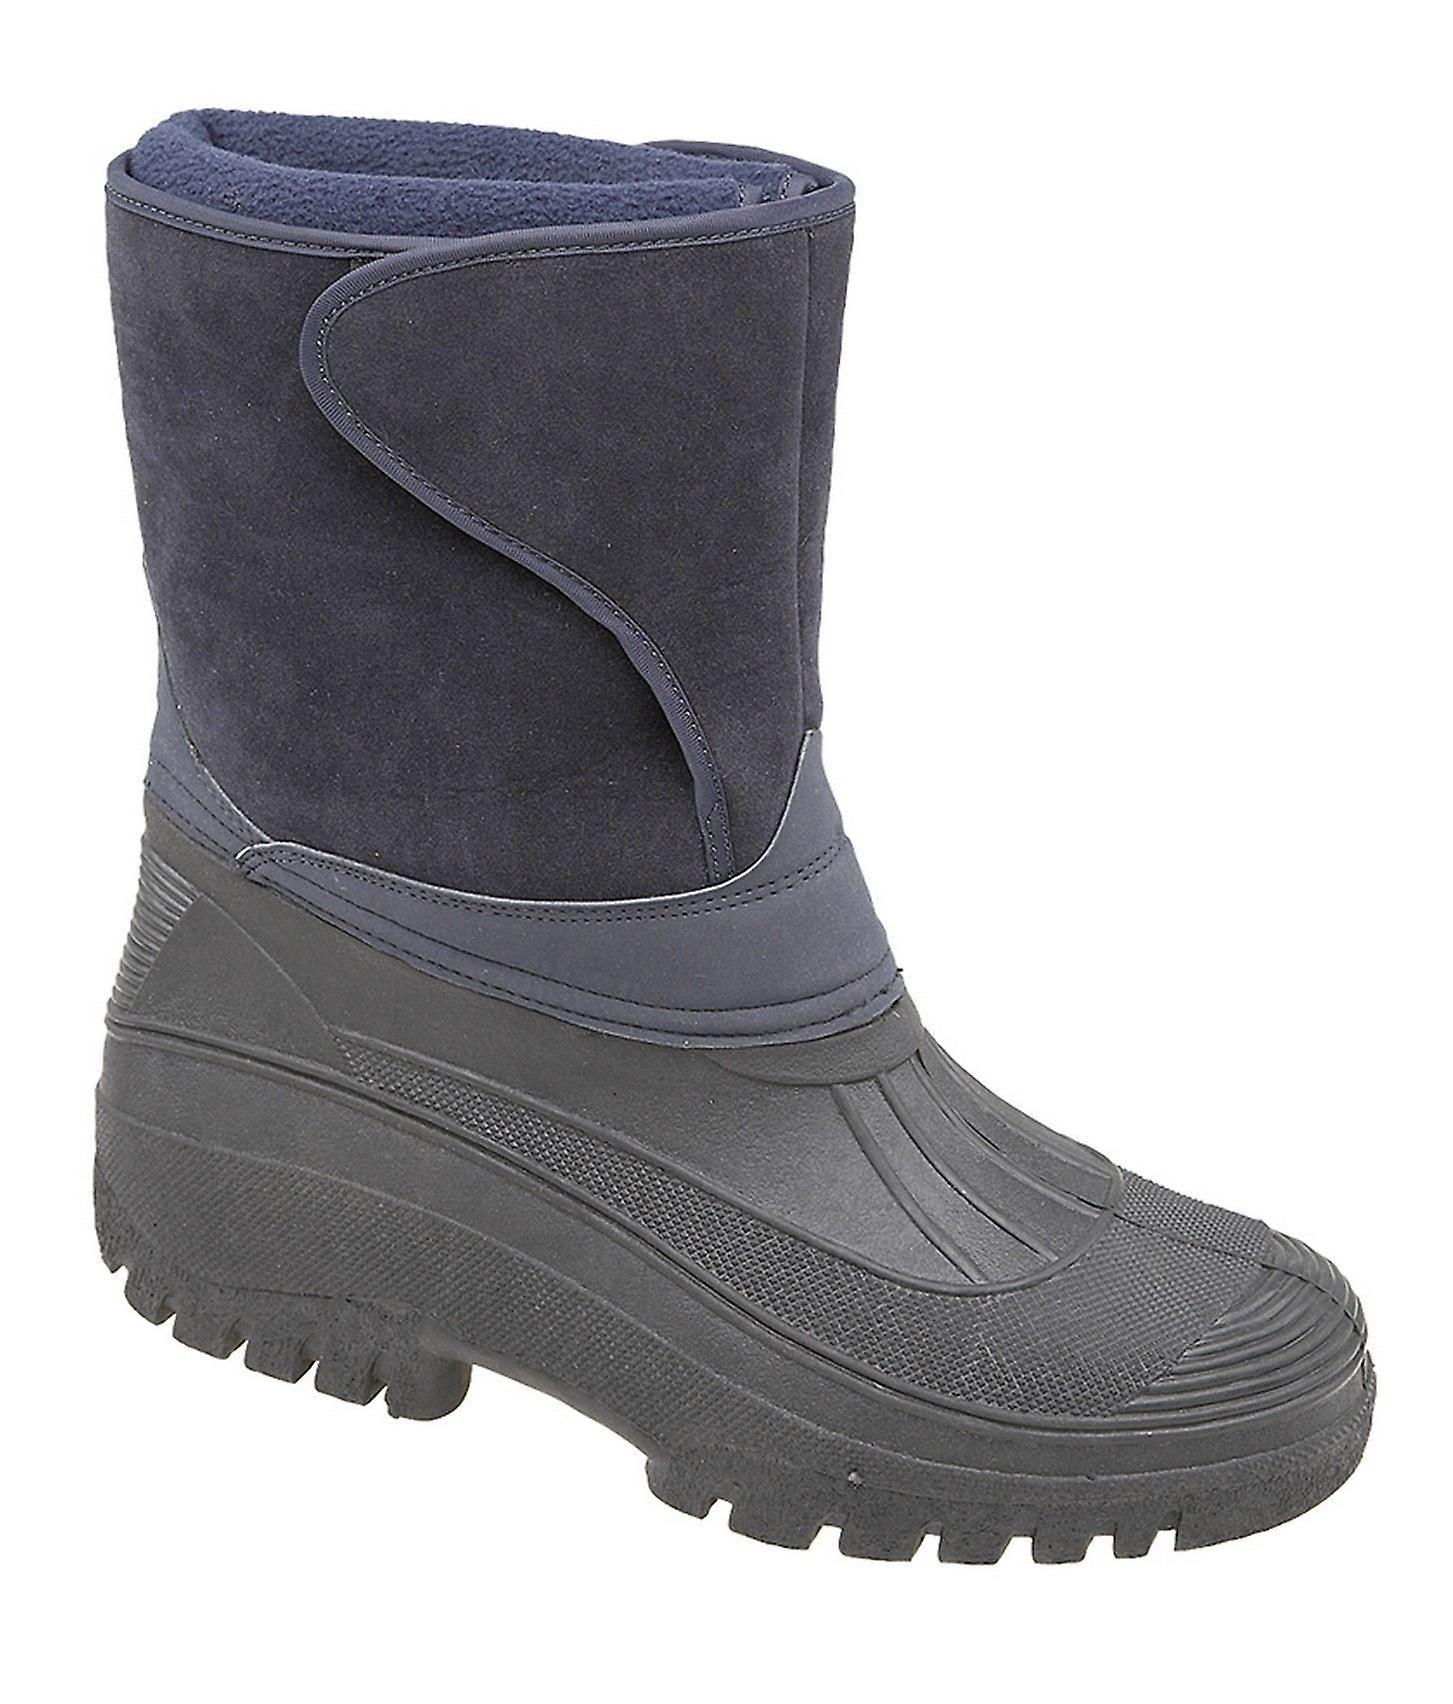 Mens Ladies Thermal Womens Thermal Ladies Waterproof Warm Lined Winter Mid Calf Boots Shoes:Men's/Women's:Modern Techniques 591567